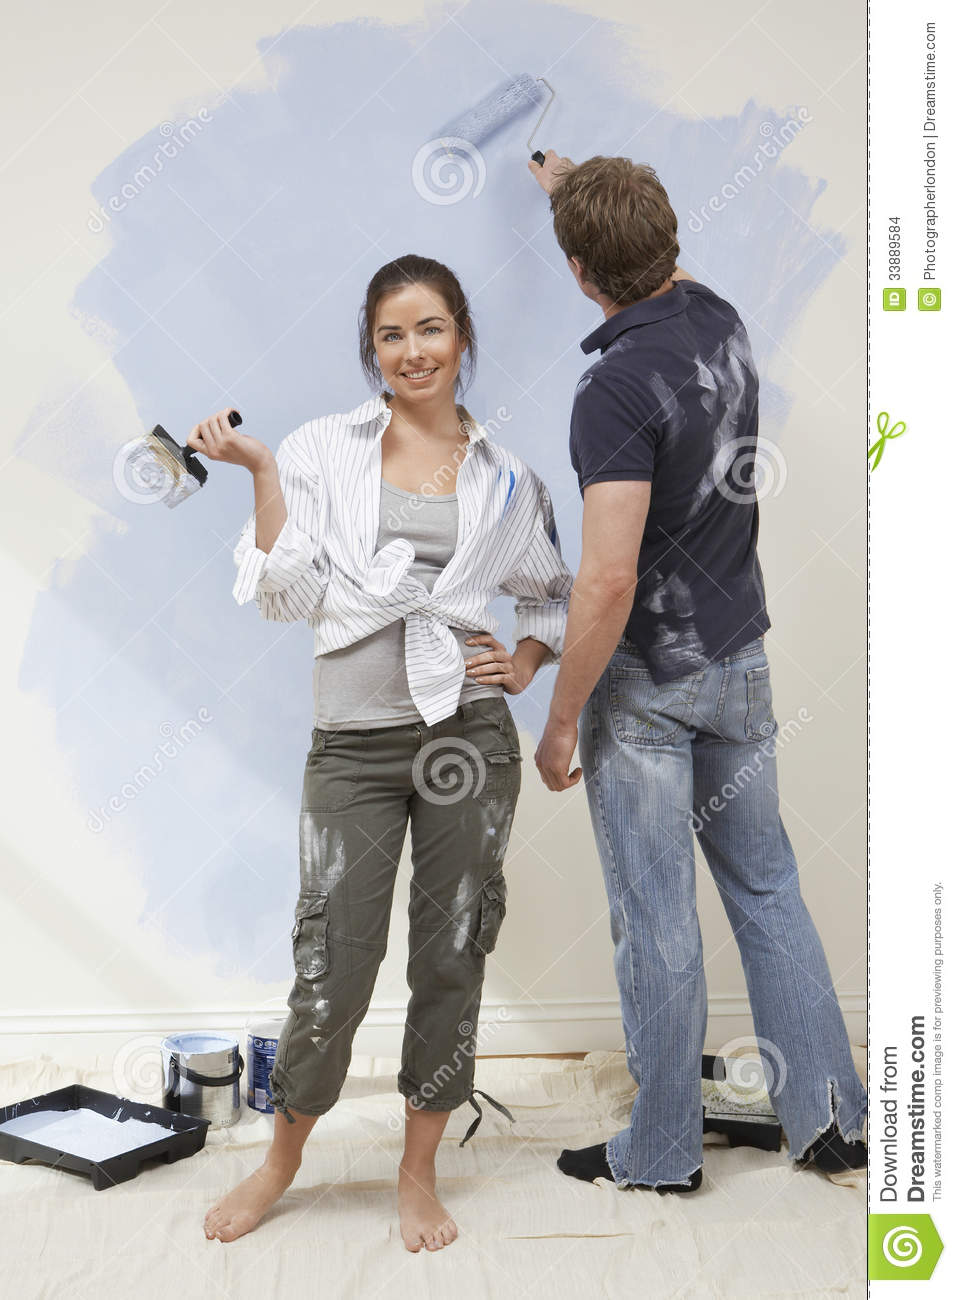 Woman Holding Paintbrush While Man Painting Wall Stock Photo